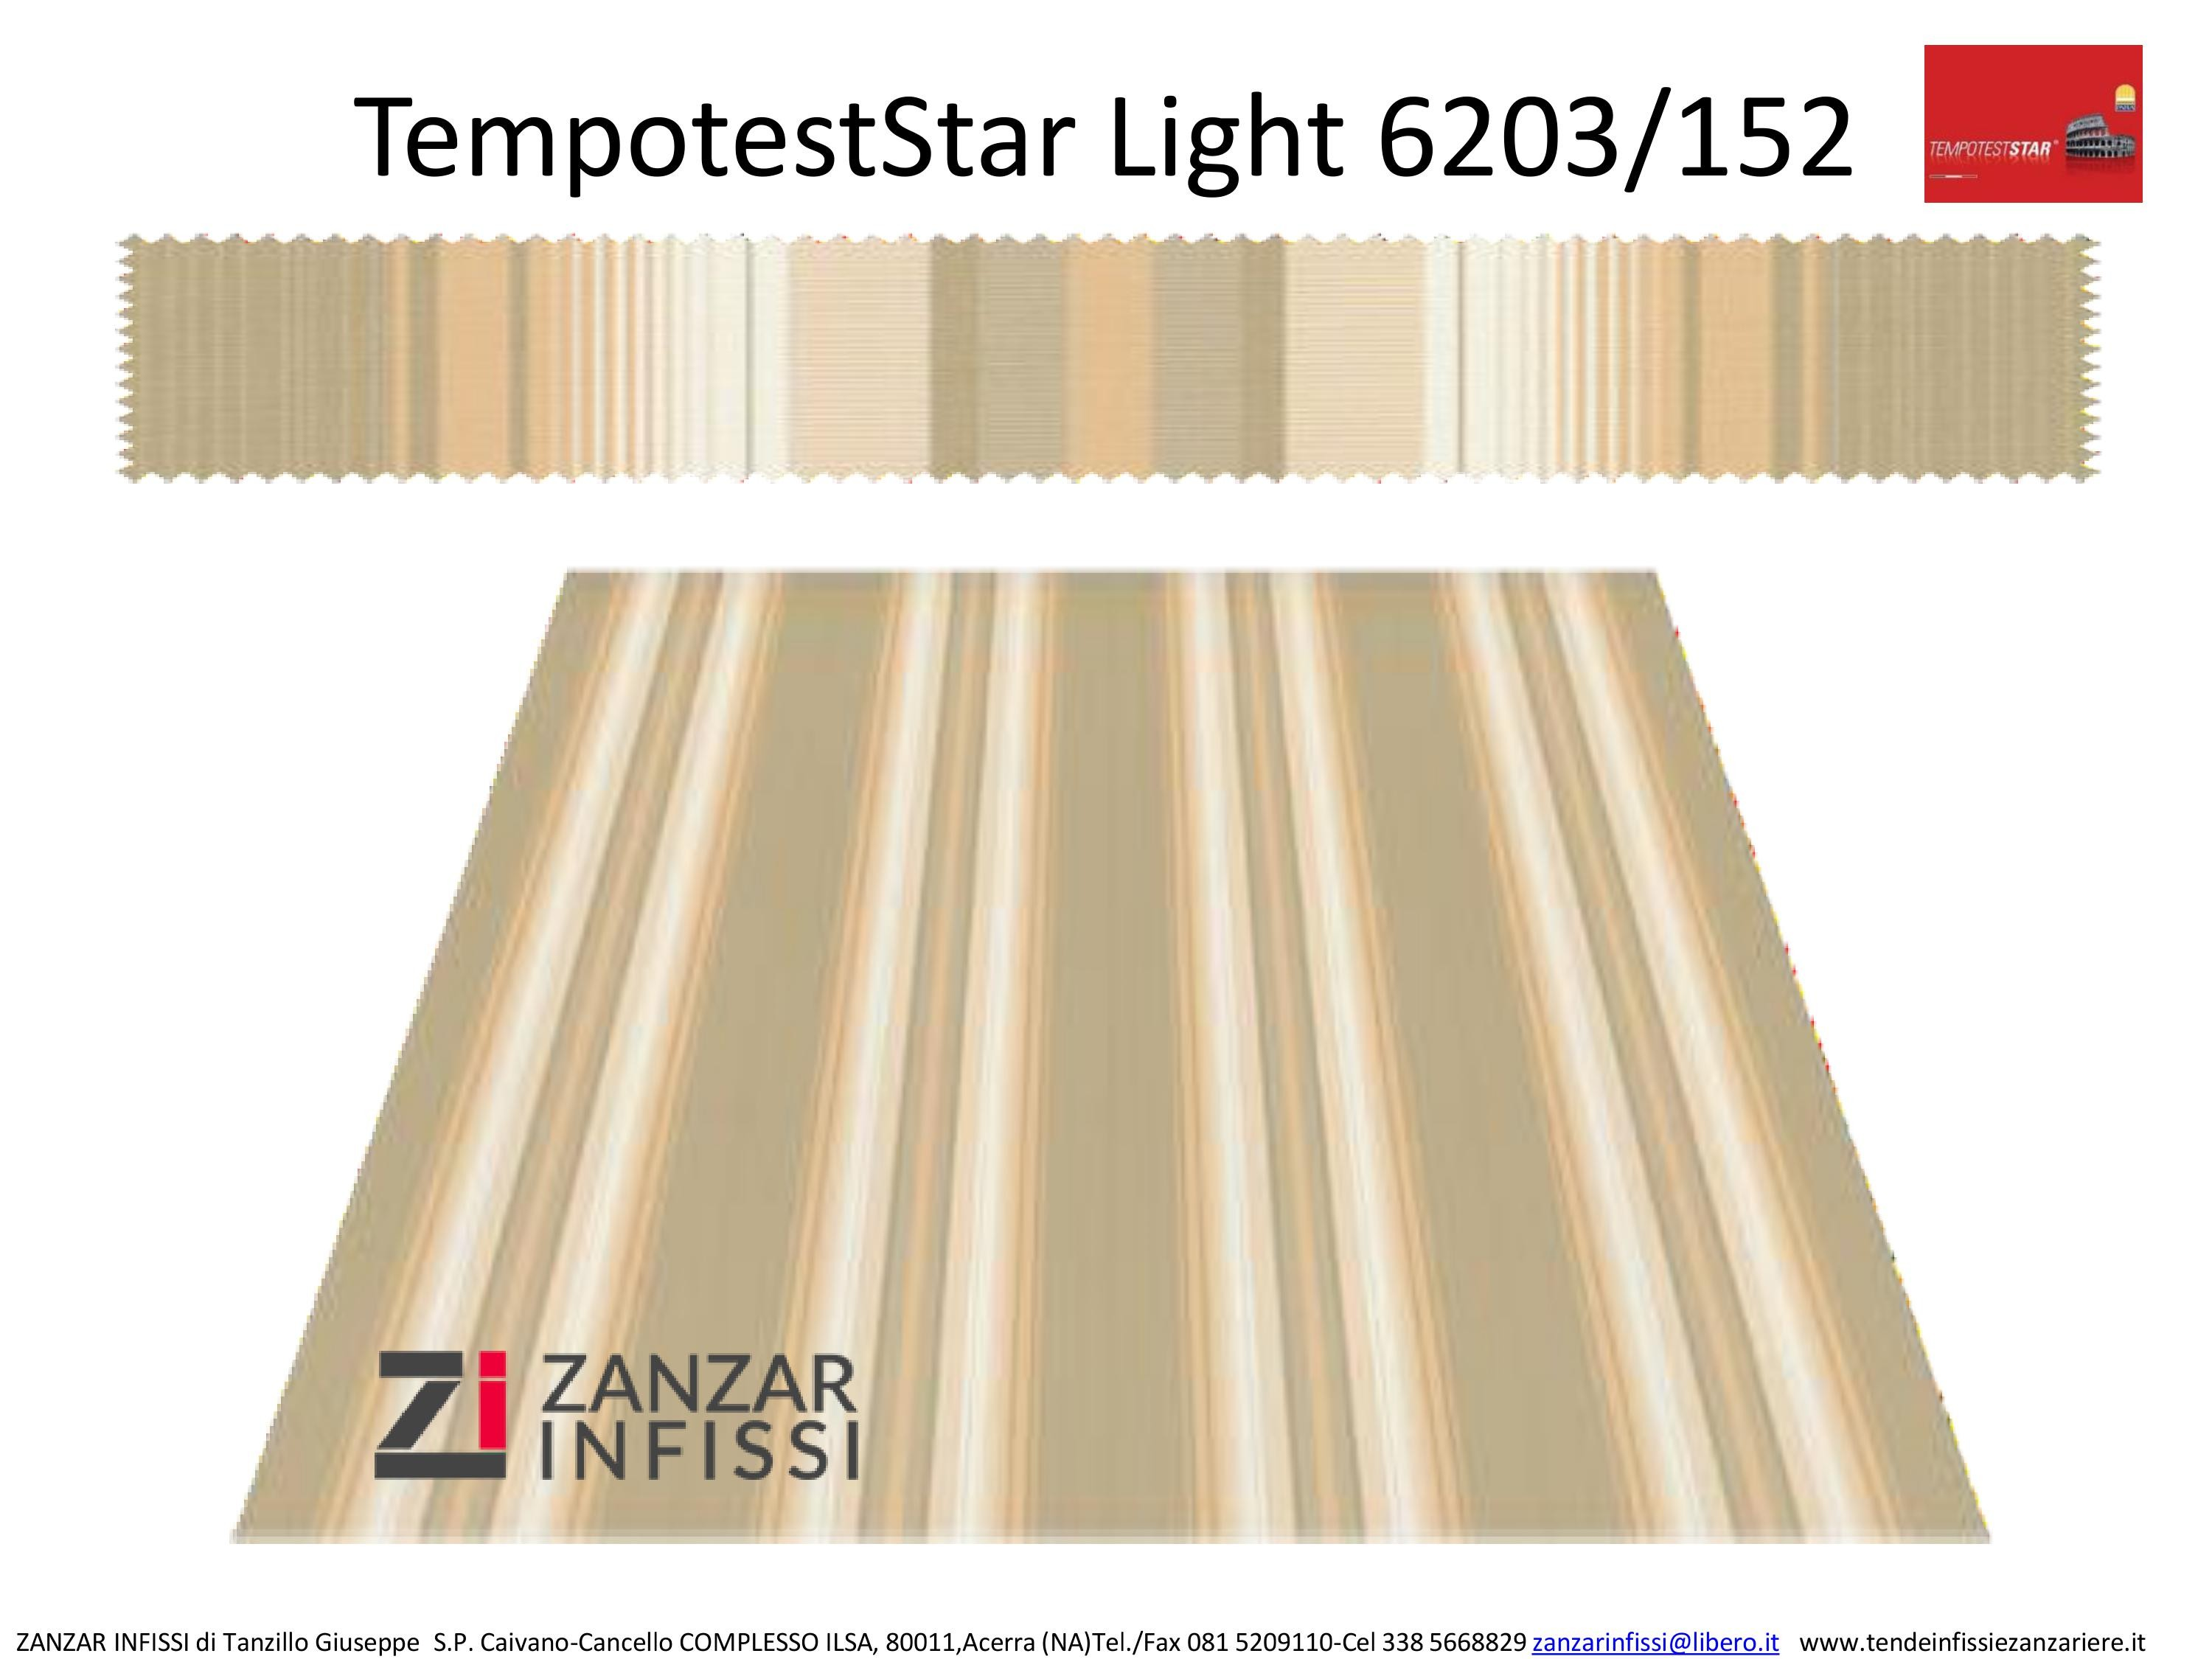 Tempotest star light 6203/152